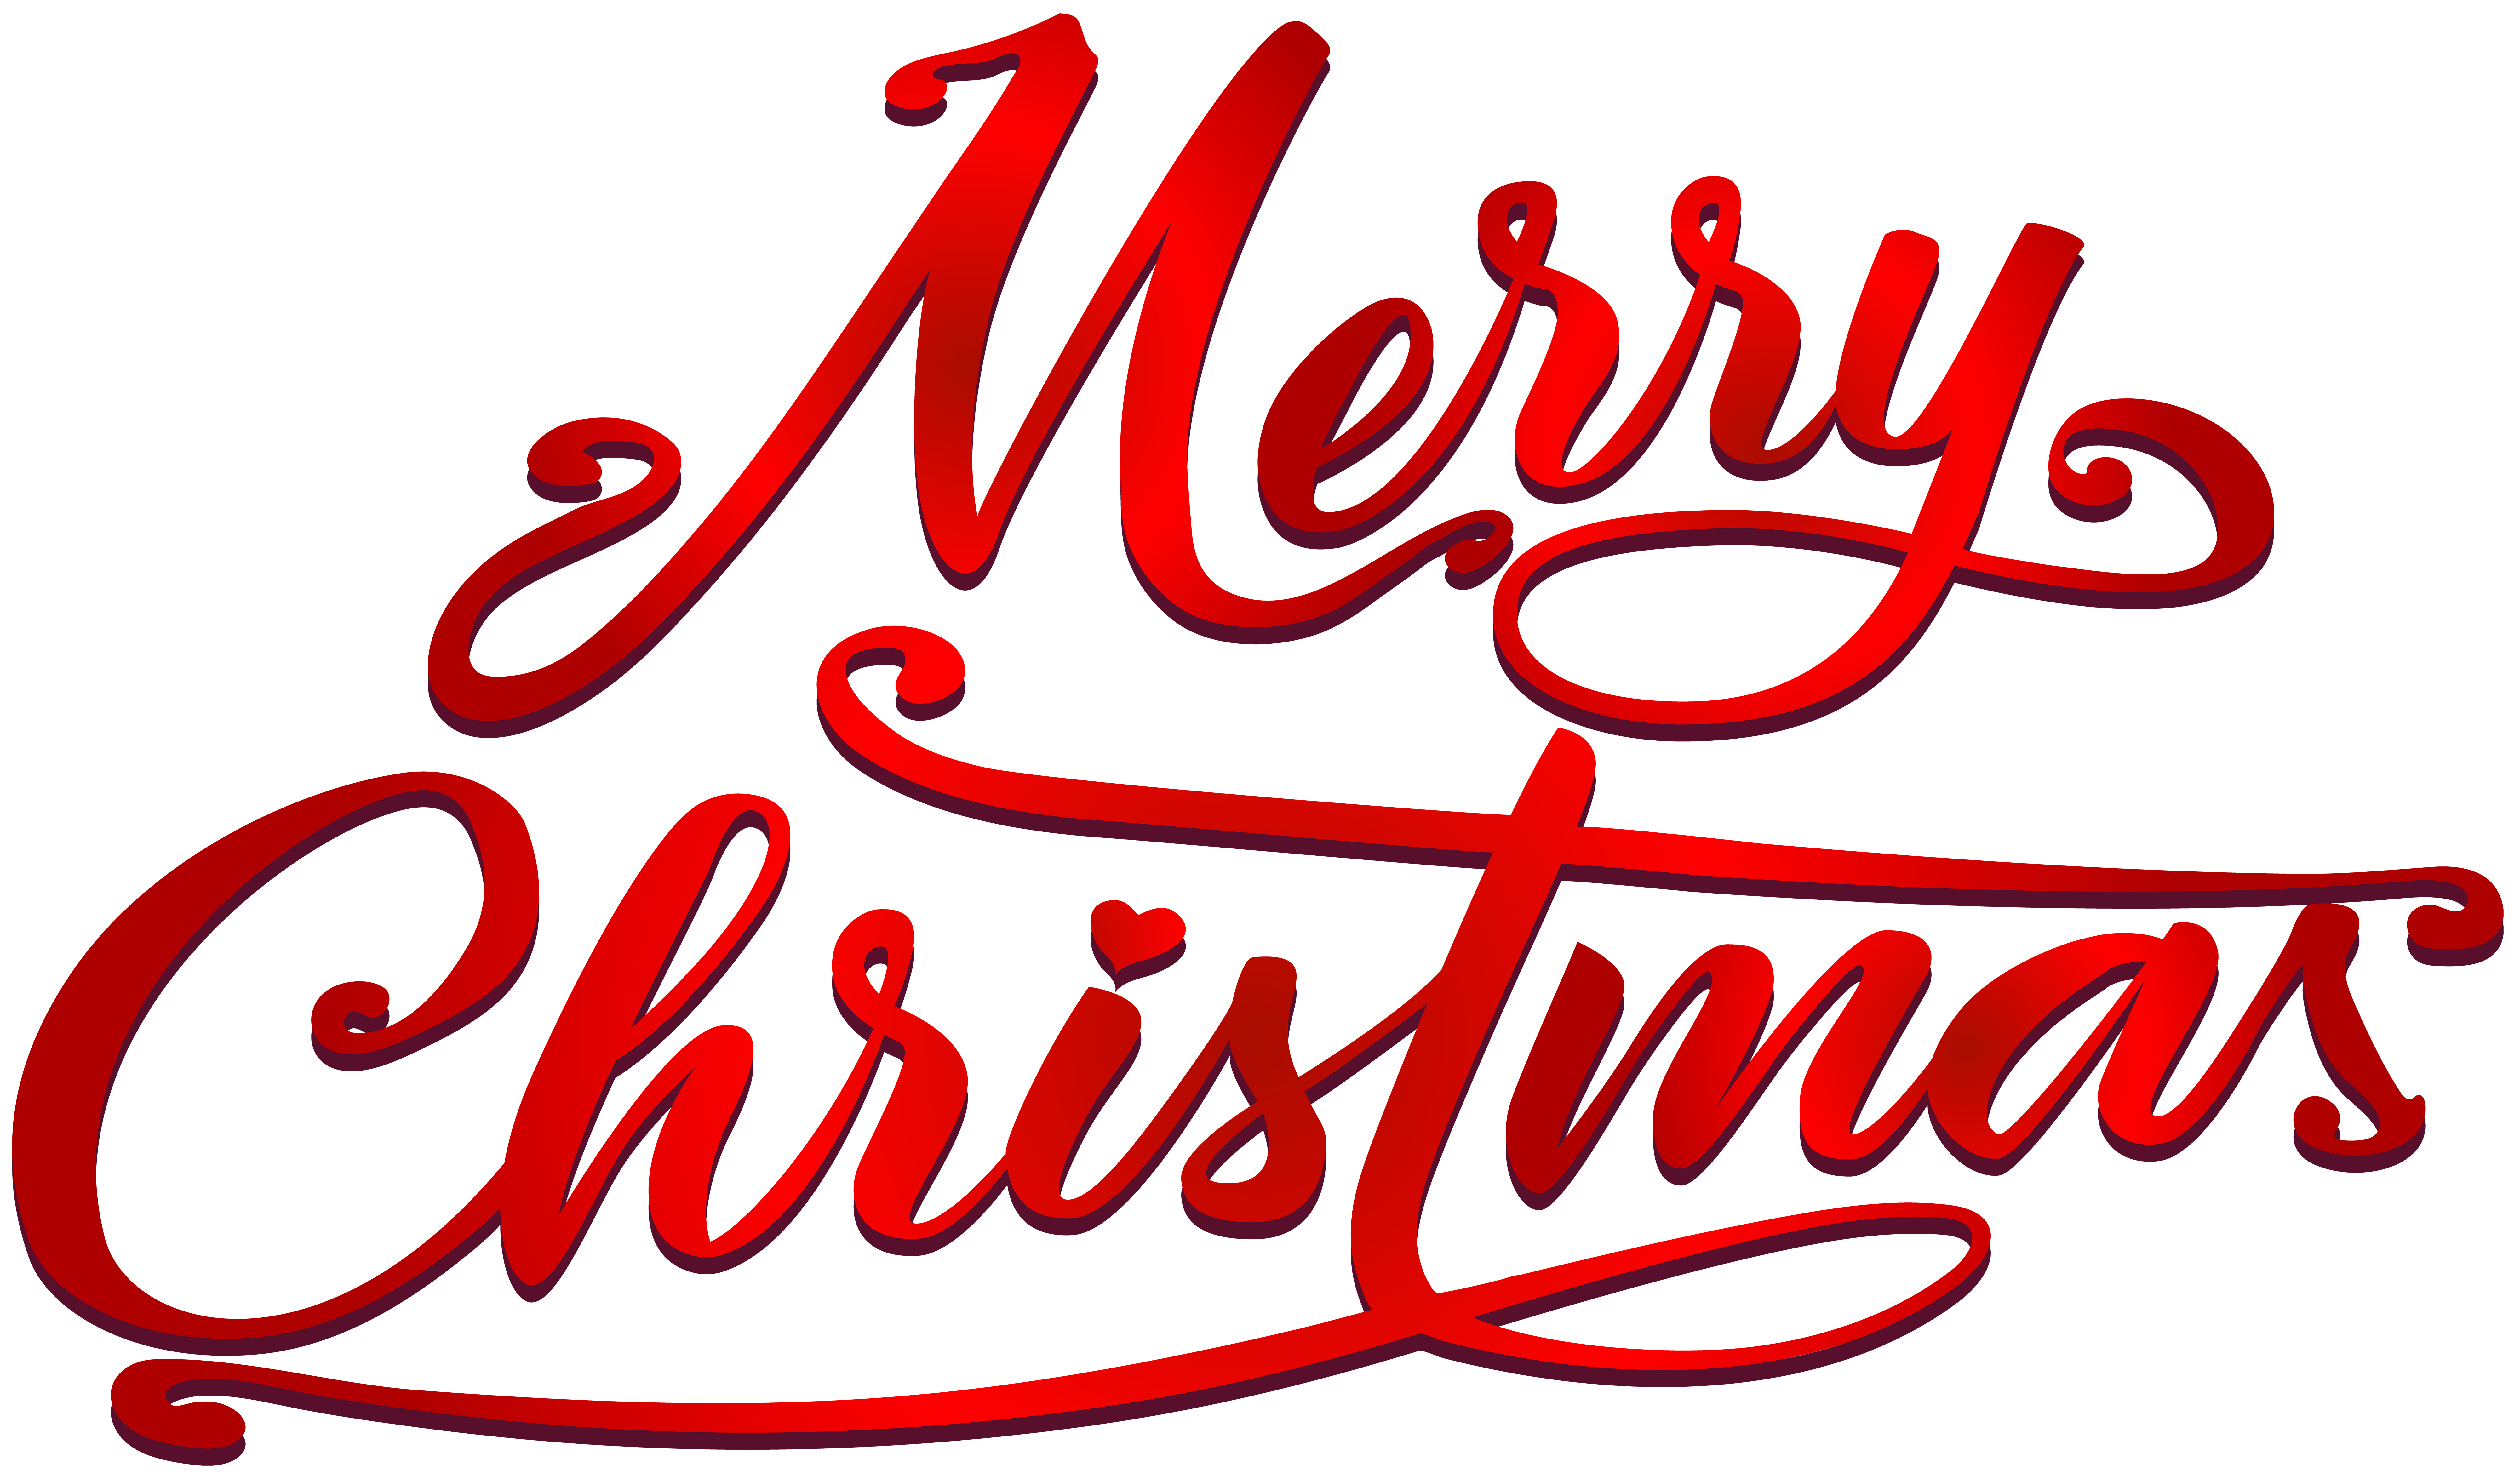 Merry Christmas Text PNG Clip Art Image.